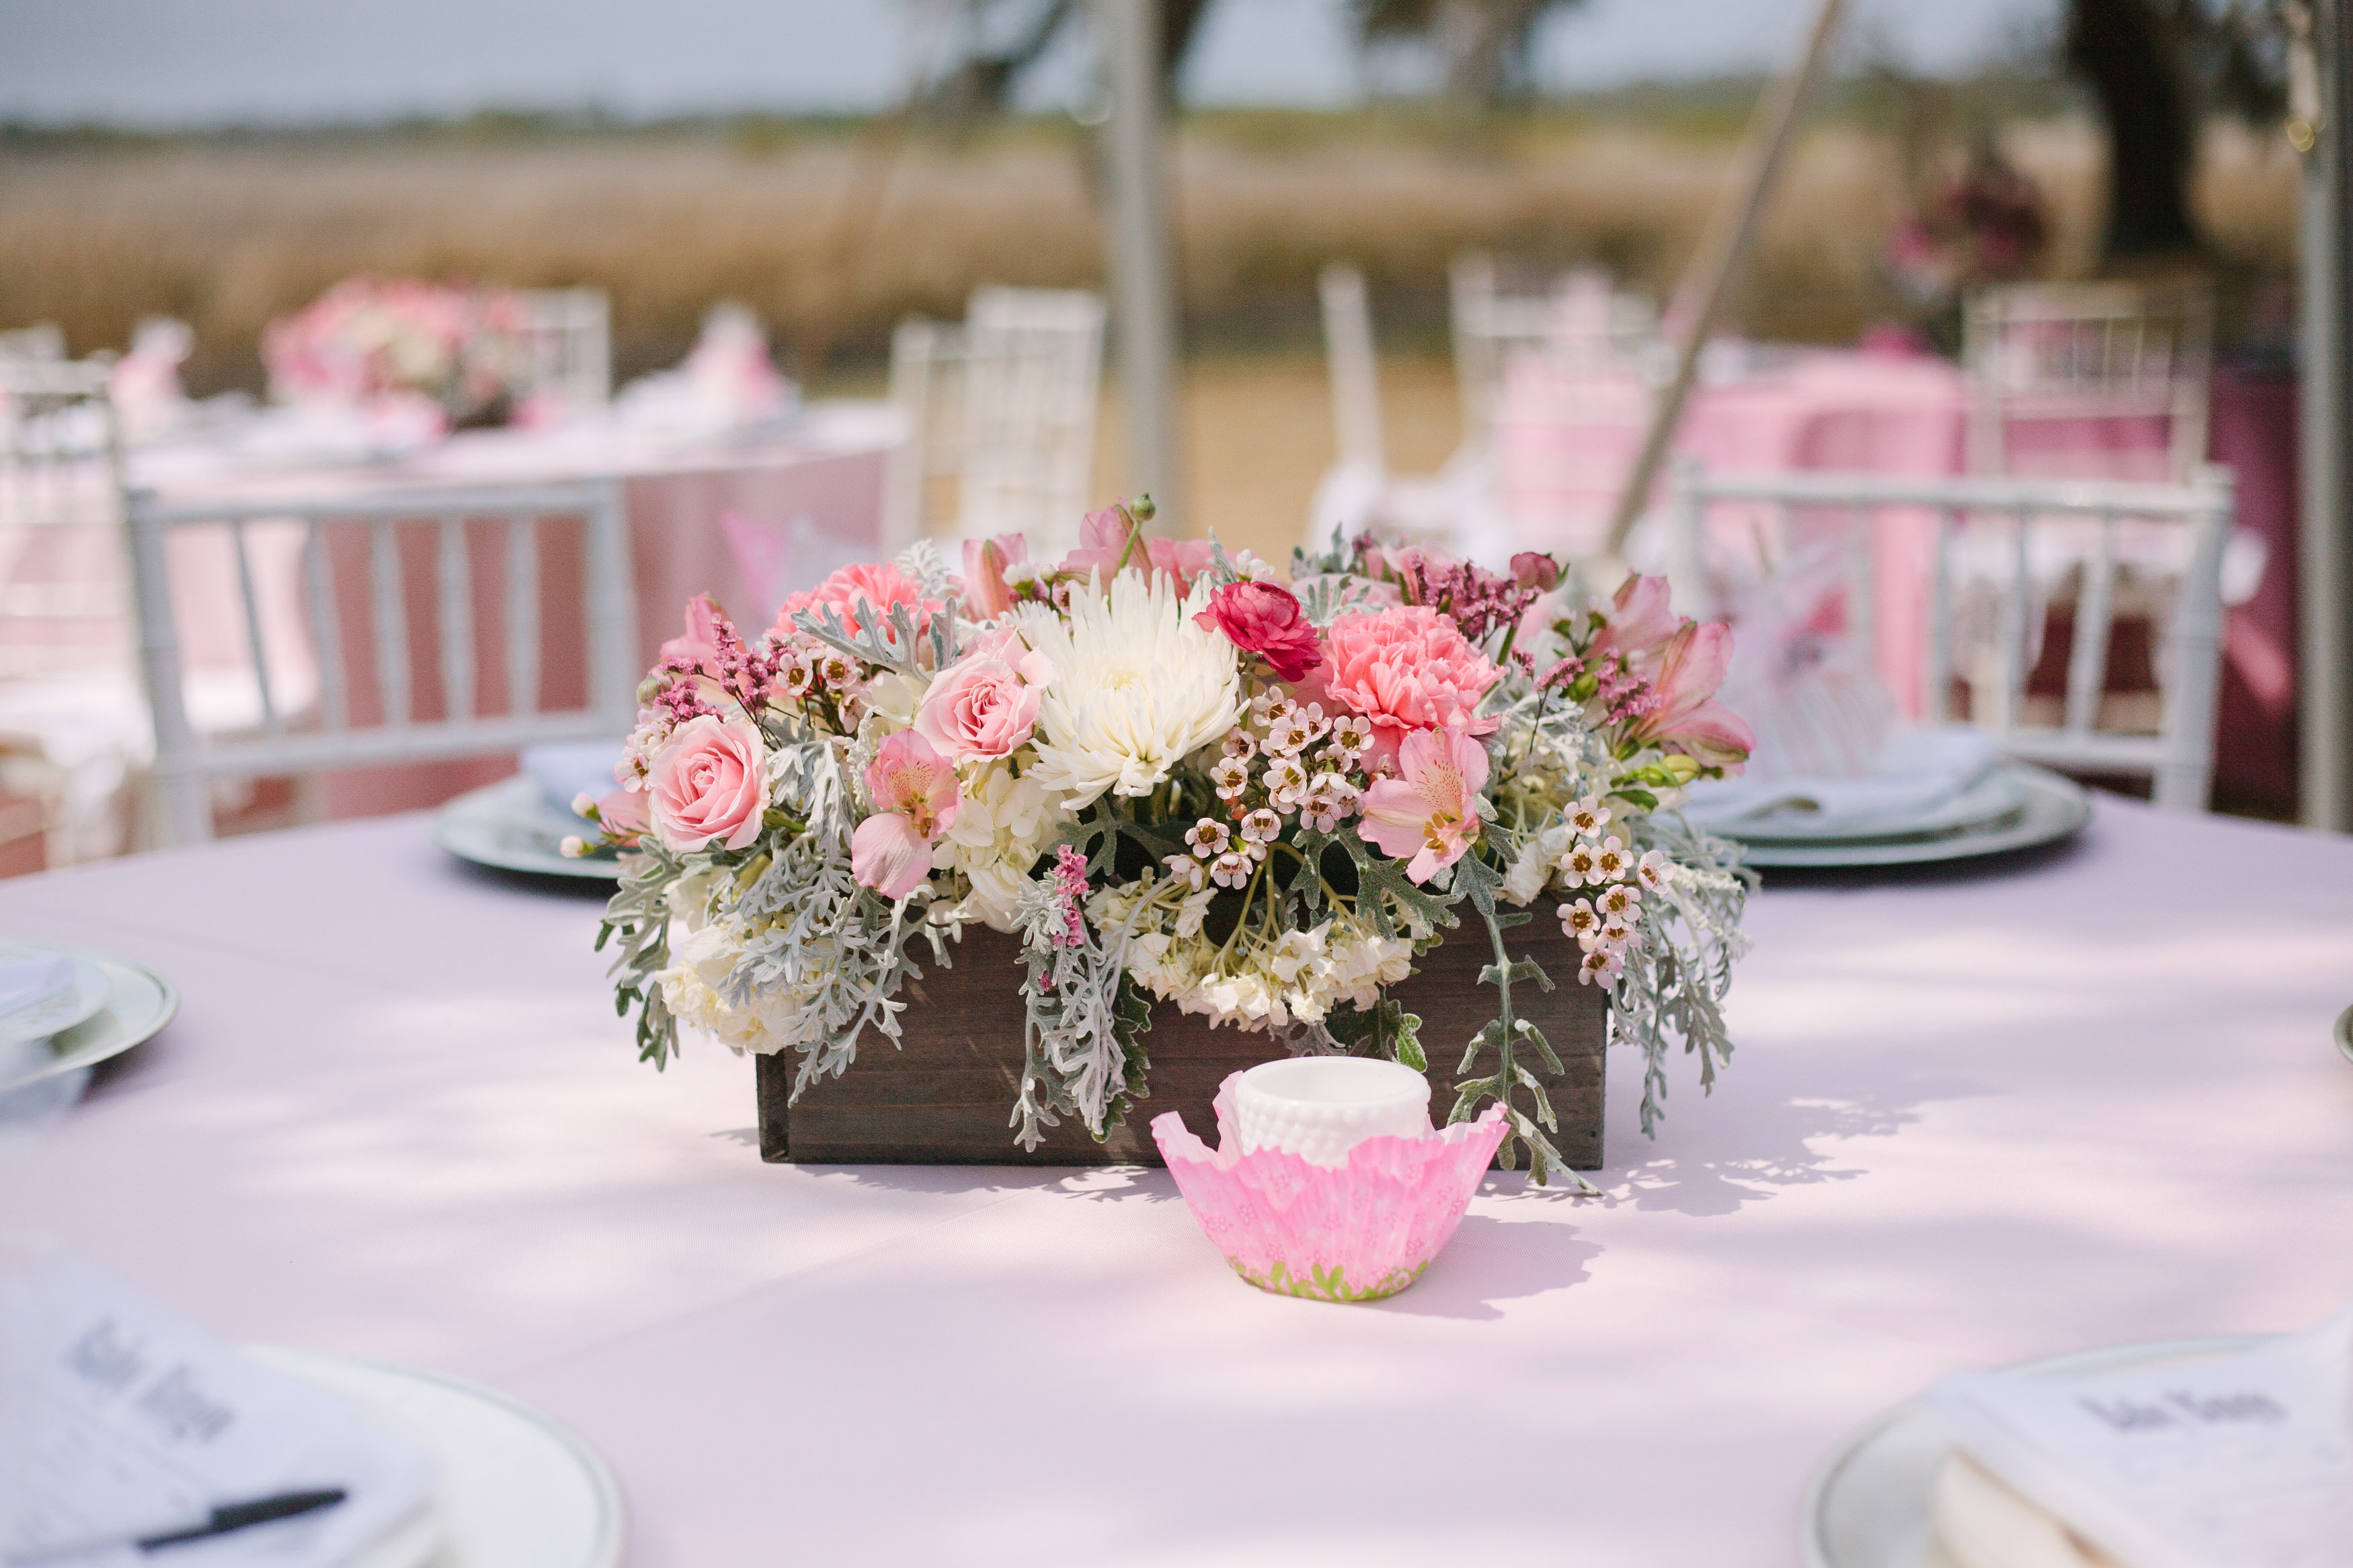 Centerpiece Ideas For Baby Shower Girl : Pretty in pink… a southern baby shower gigi noelle events